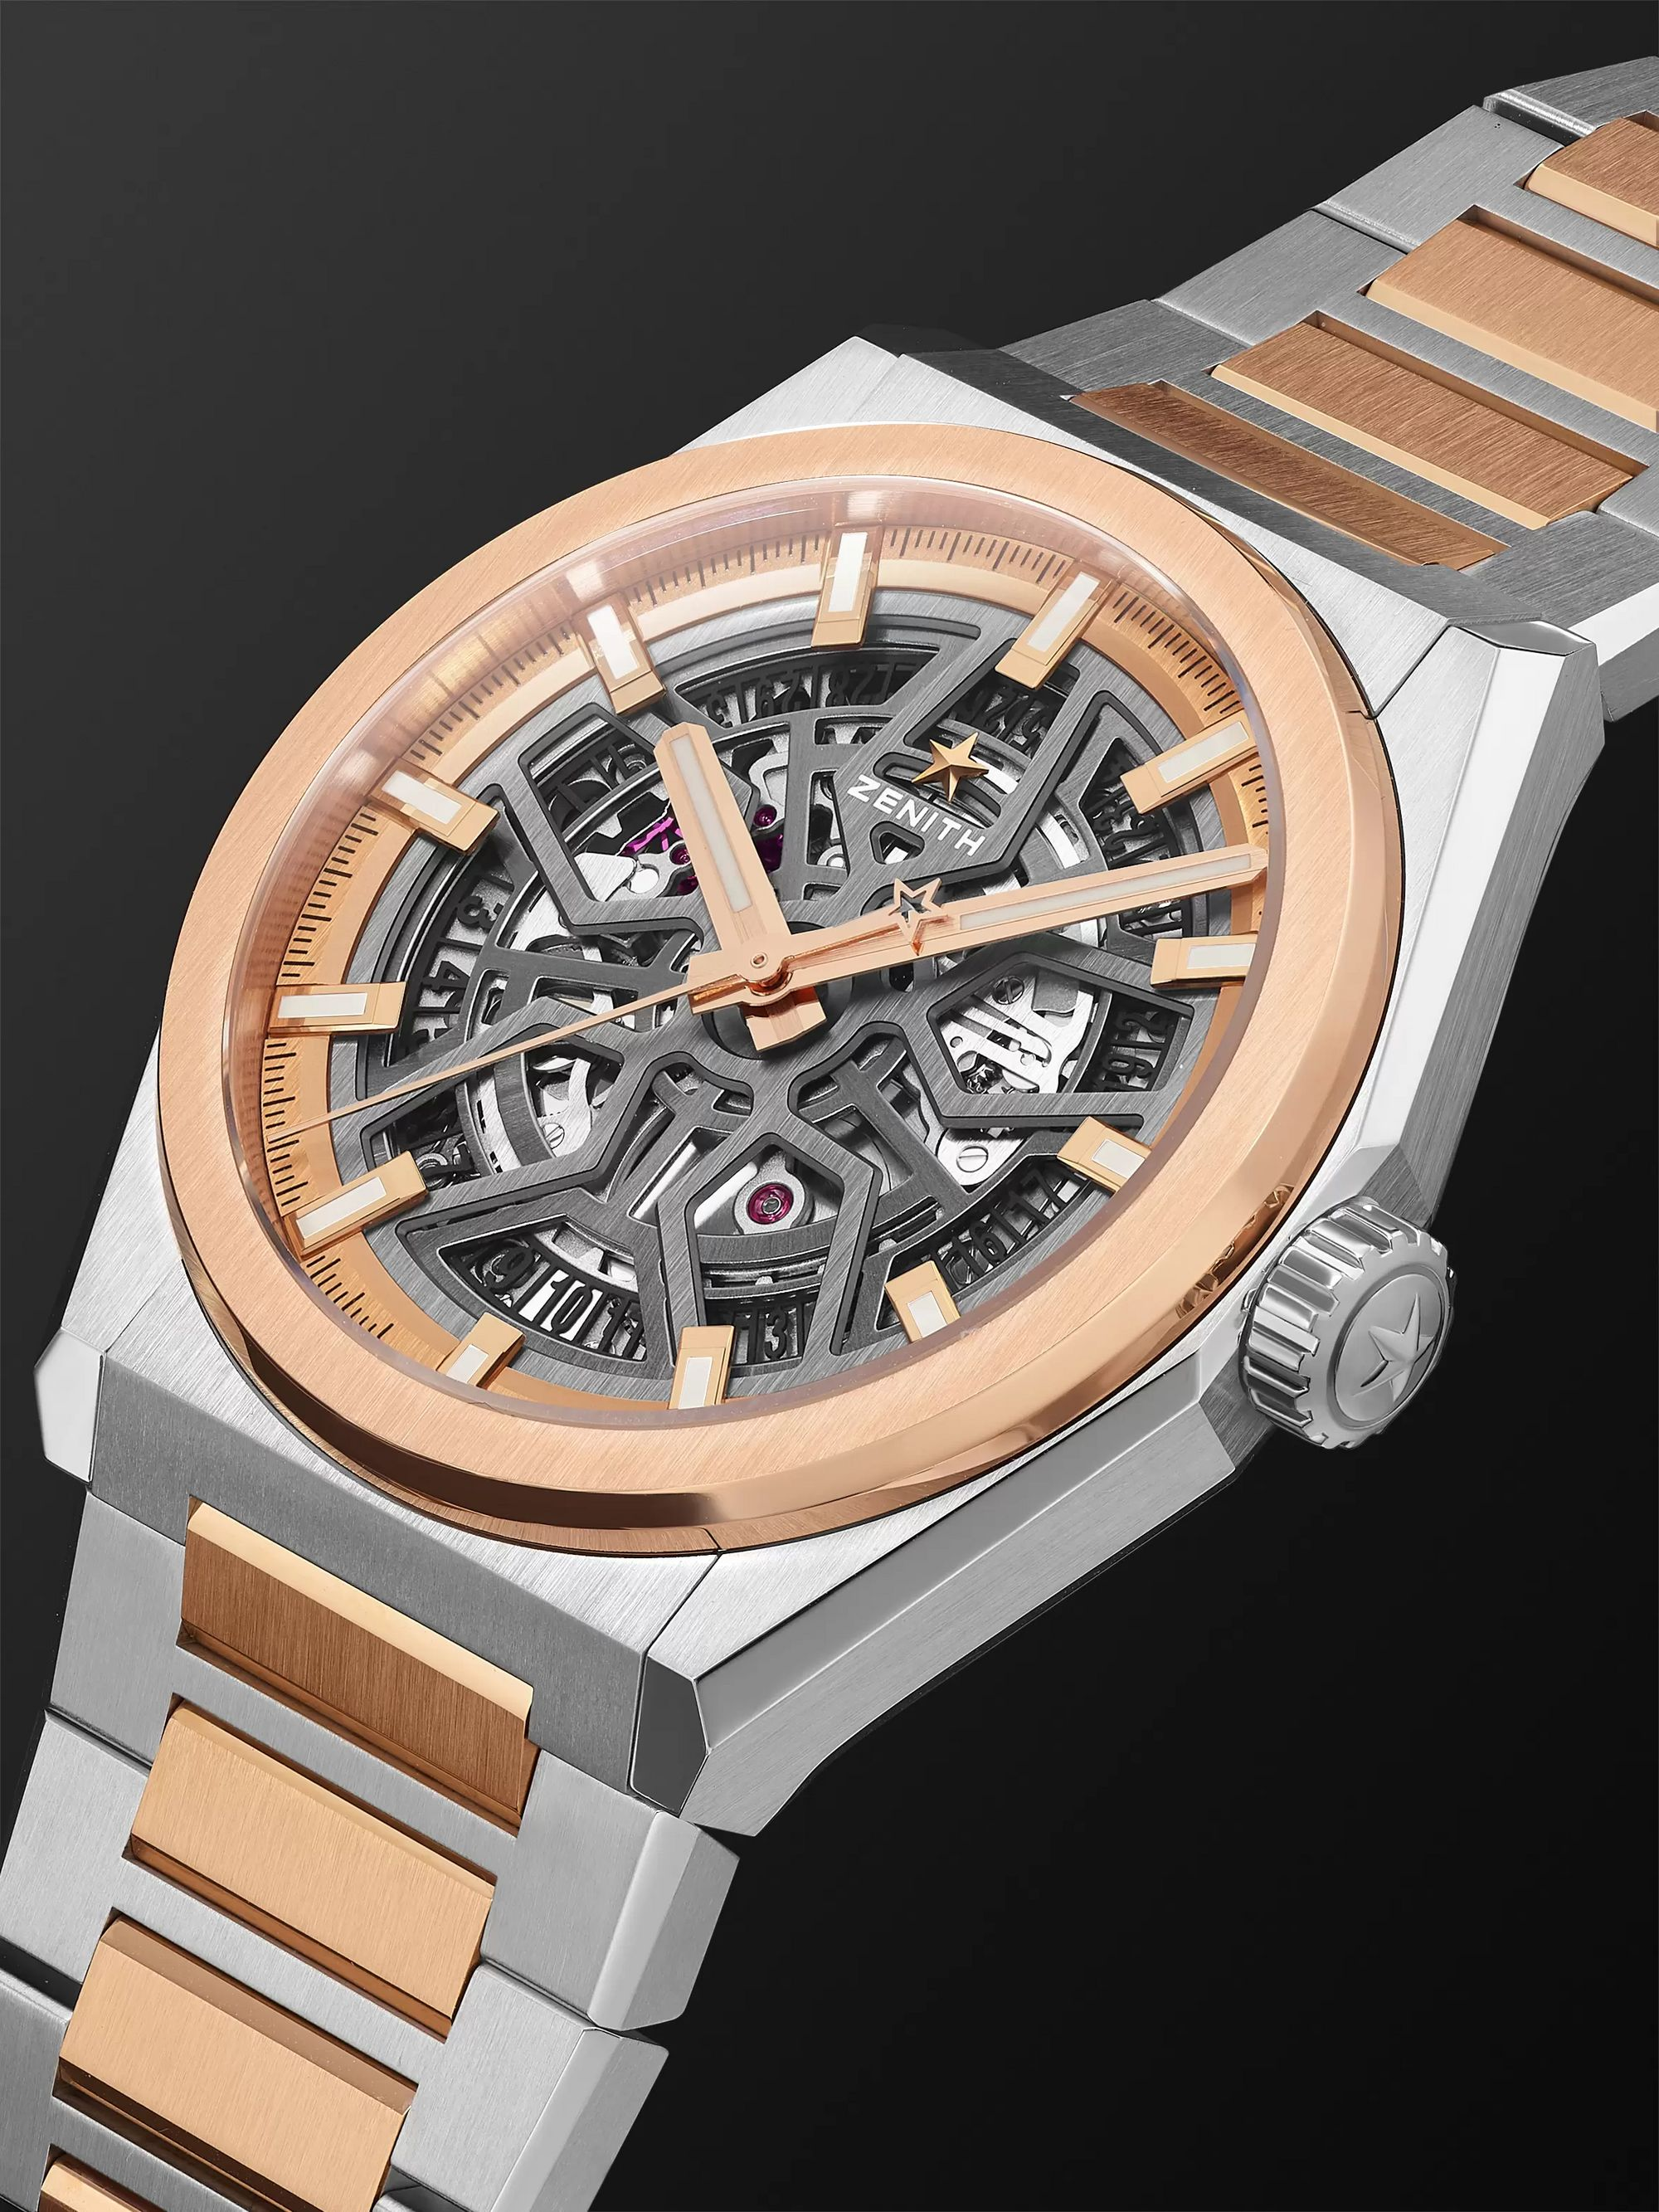 Zenith DEFY Classic Automatic Skeleton 41mm Brushed-Titanium and 18-Karat Rose Gold Watch, Ref. No. 87.9001.670/79.M9001